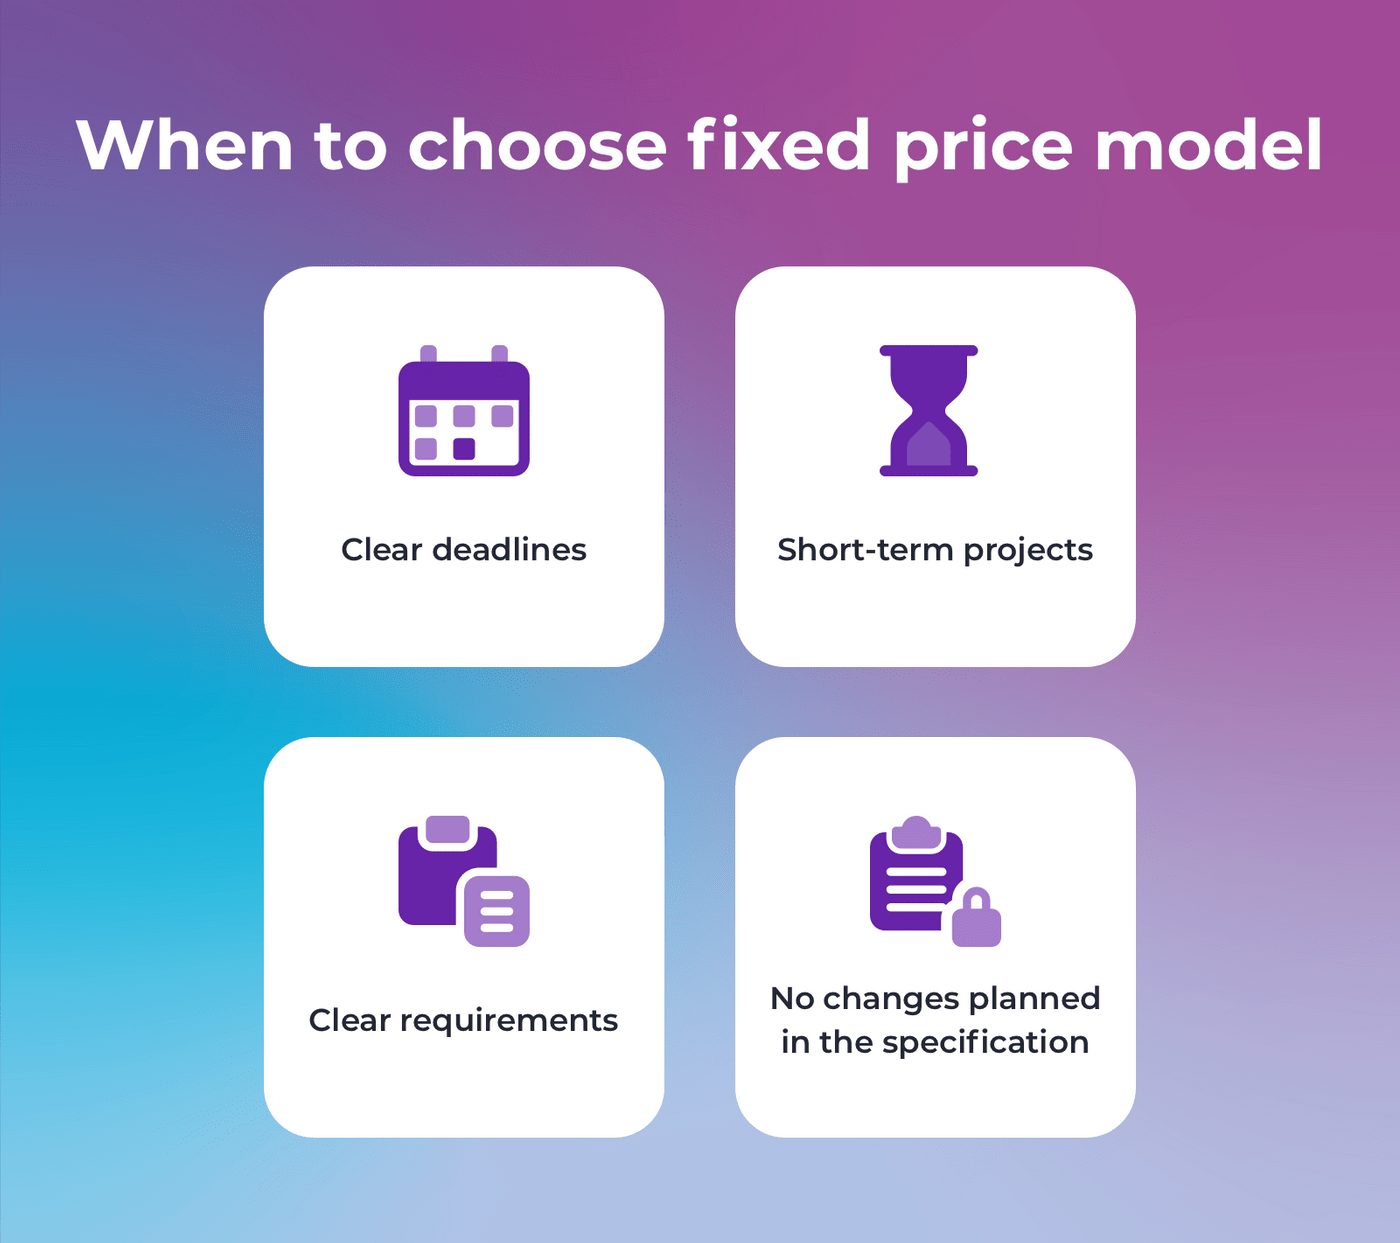 Four reasons to choose a fixed price model